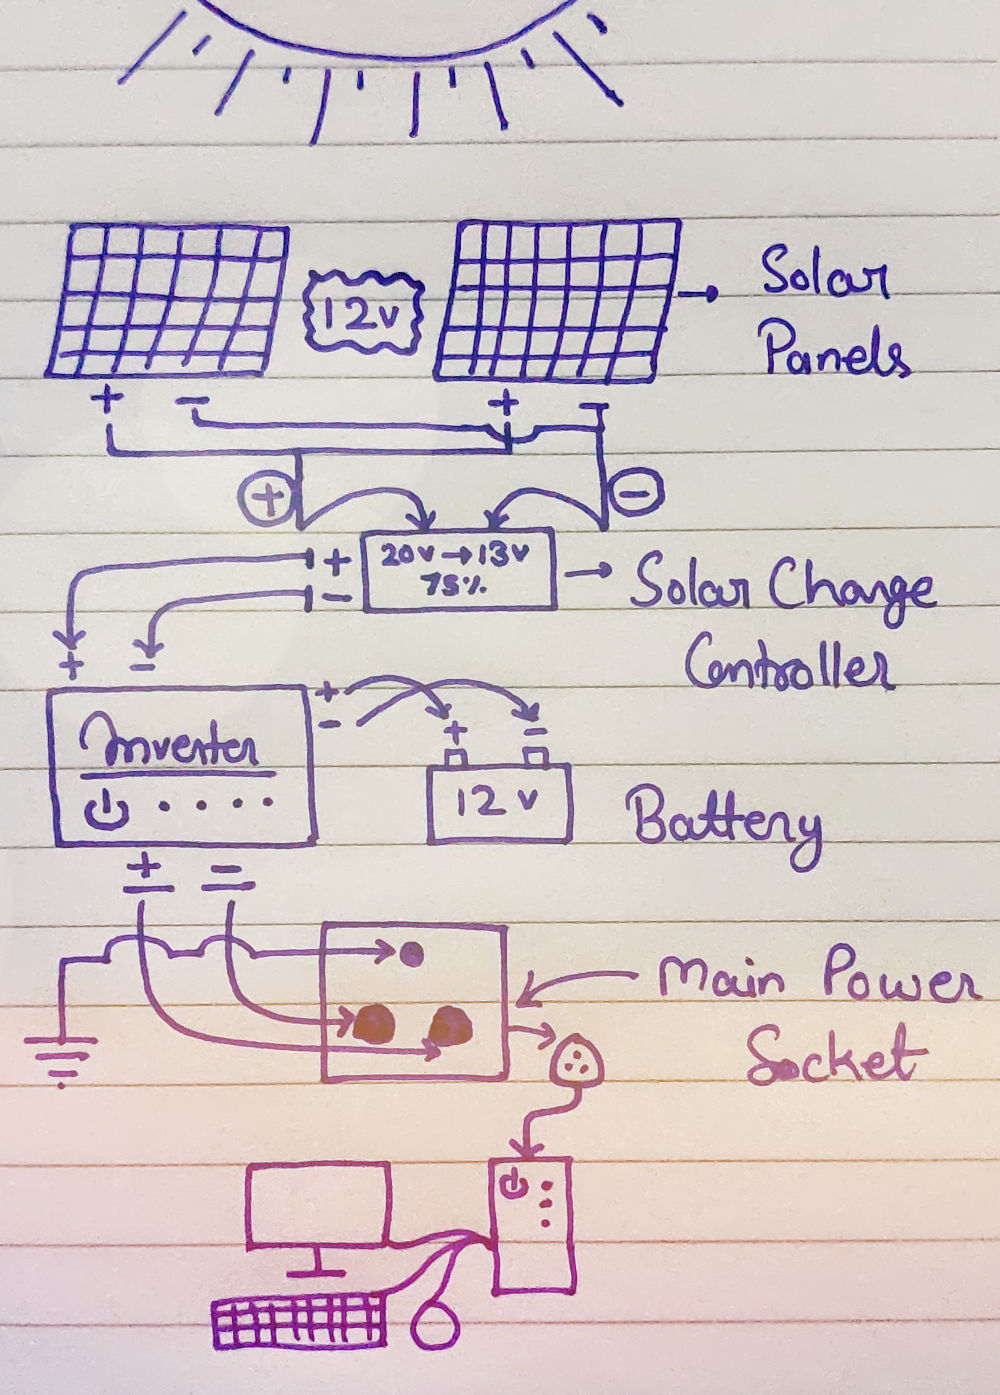 How to Run a Computer on Solar Power